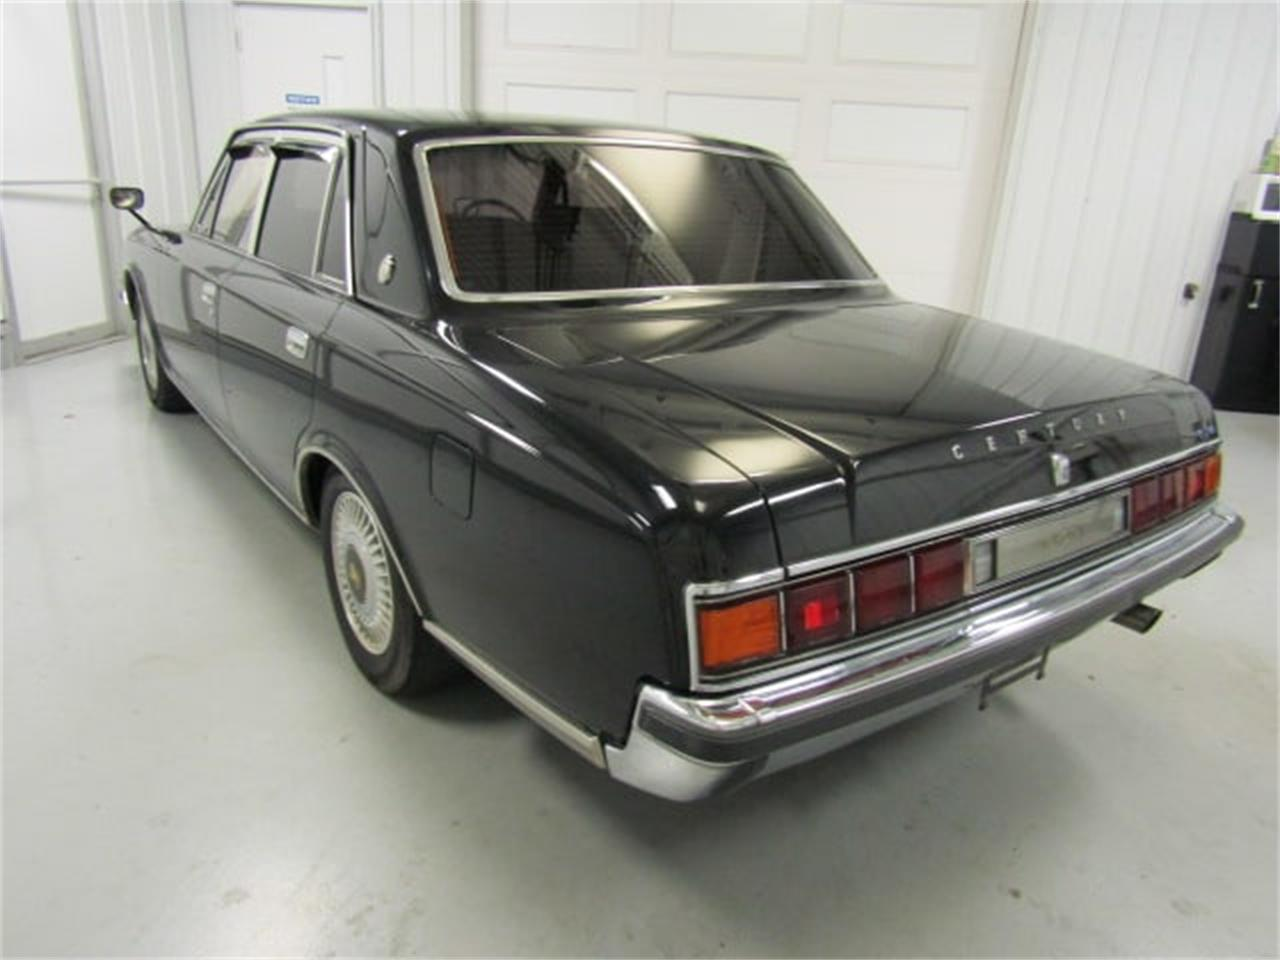 Large Picture of '89 Toyota Century - $8,989.00 Offered by Duncan Imports & Classic Cars - JM37